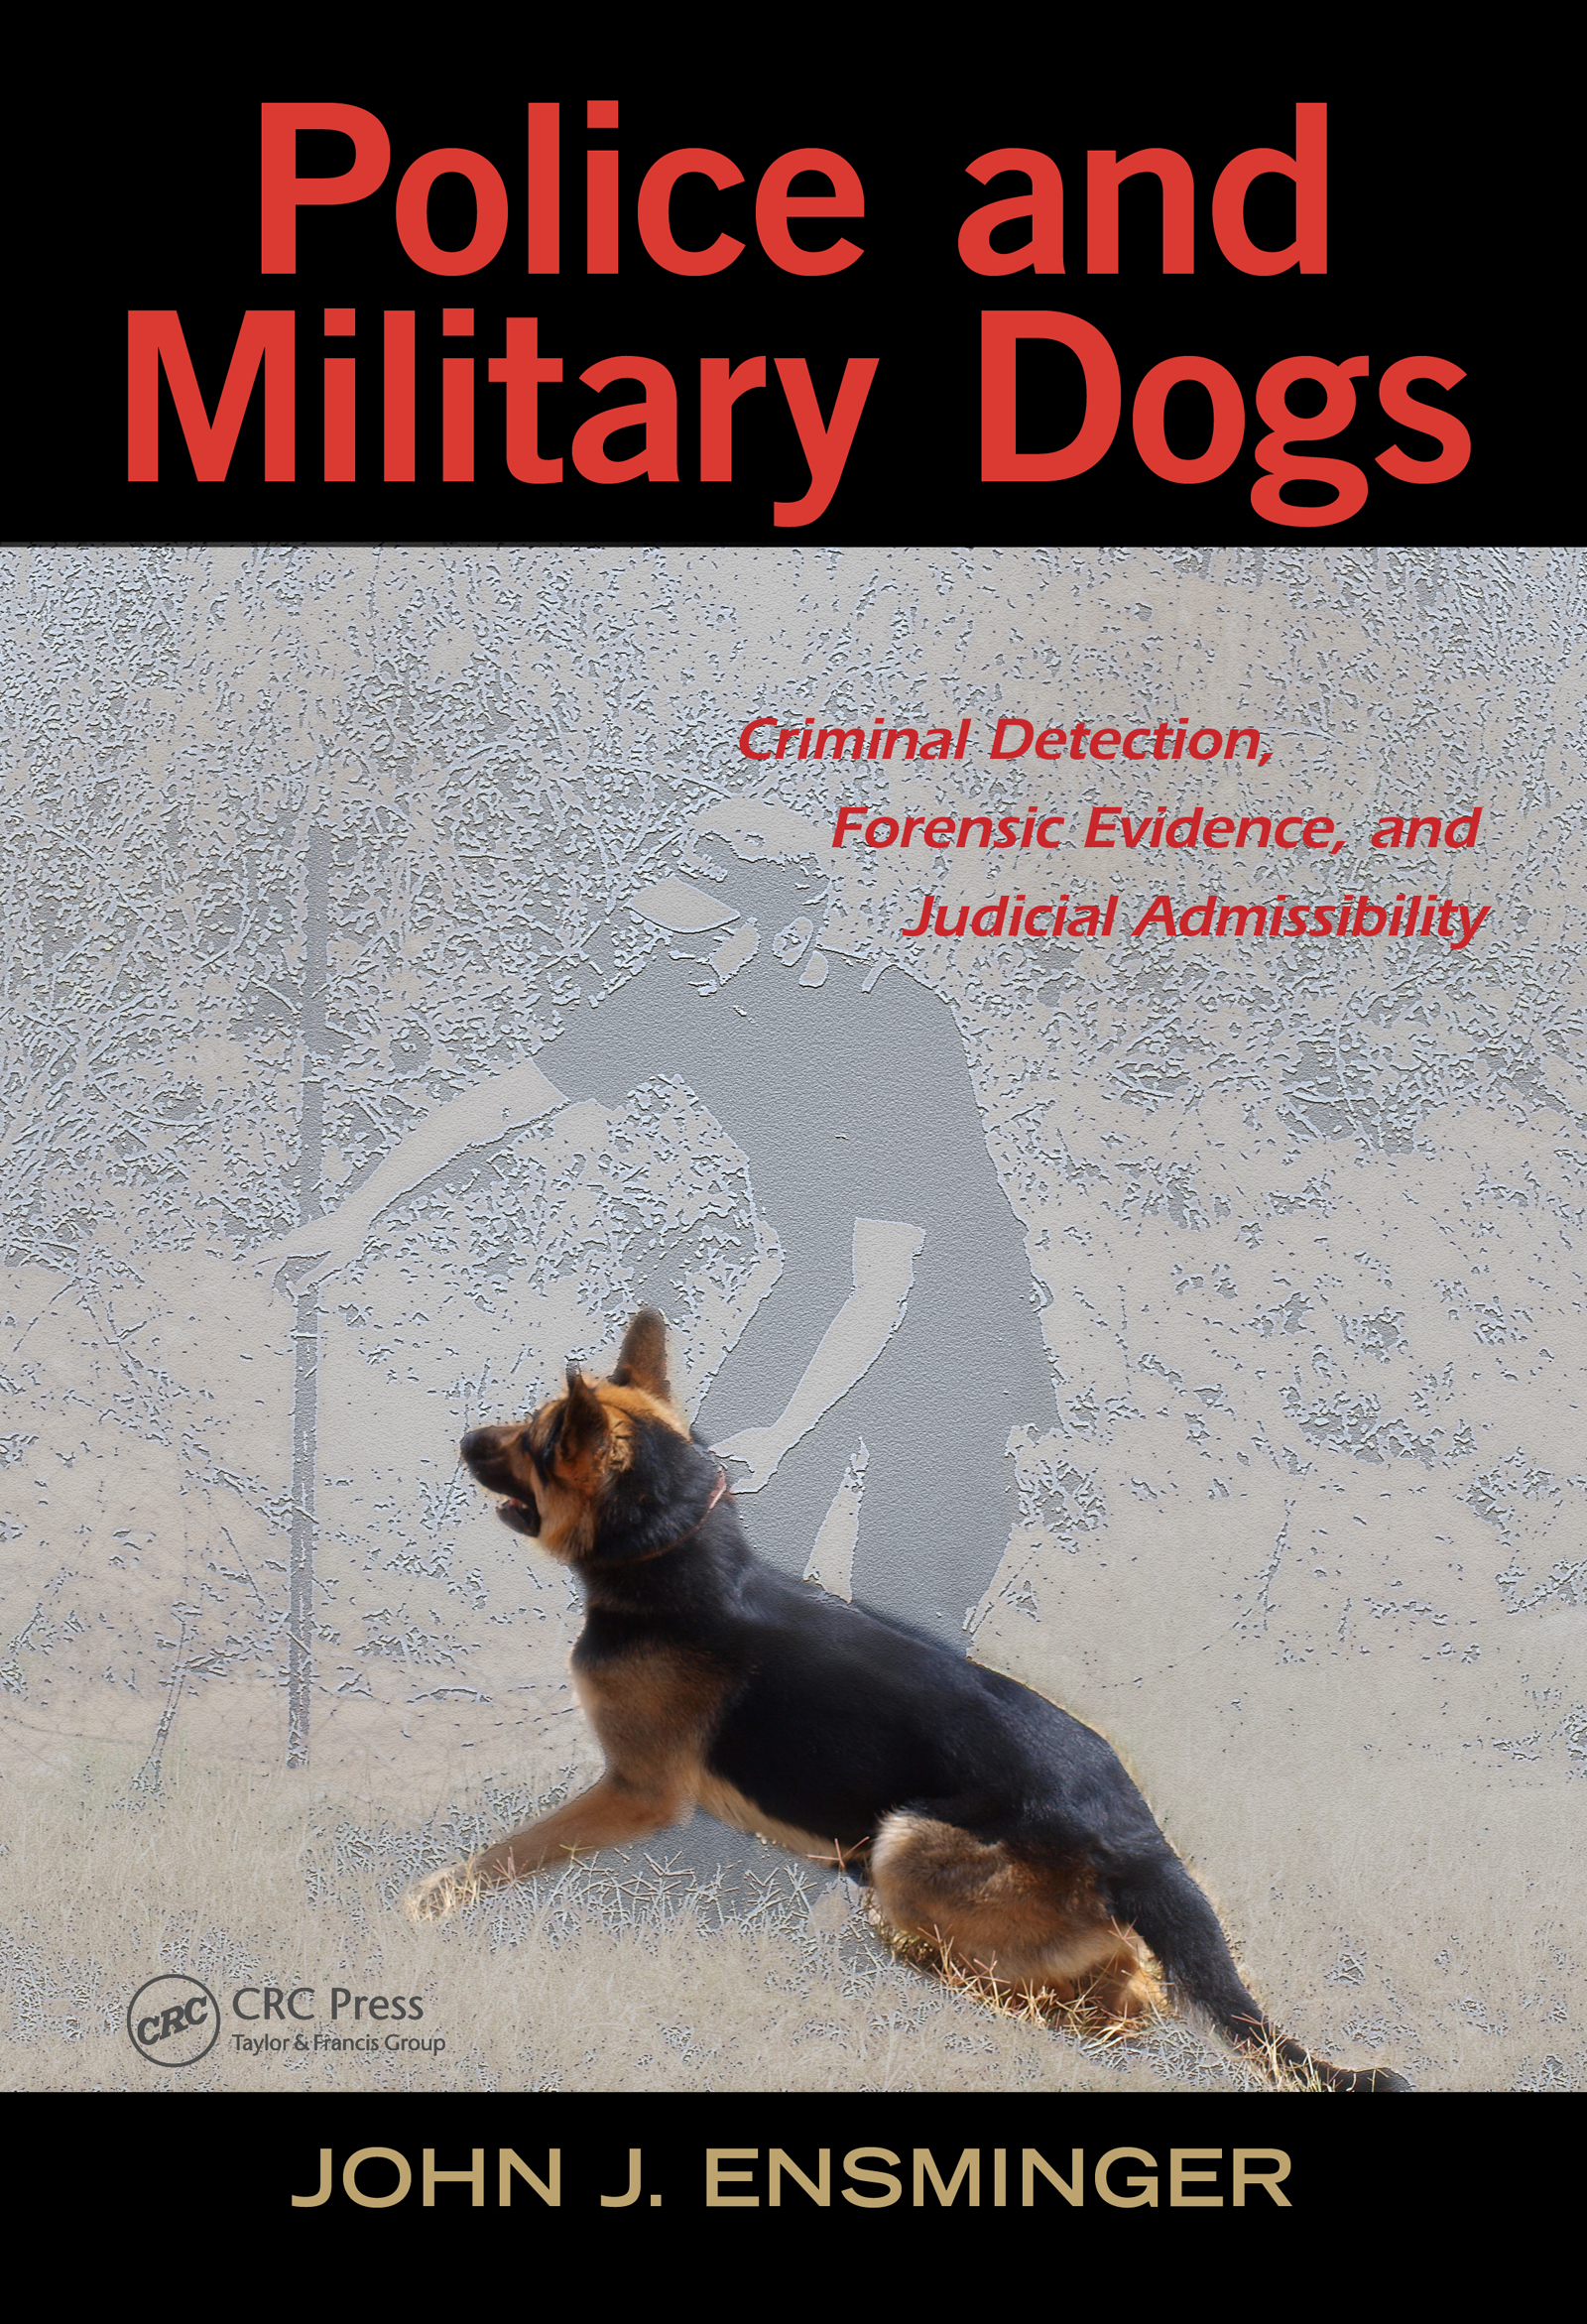 Police and Military Dogs